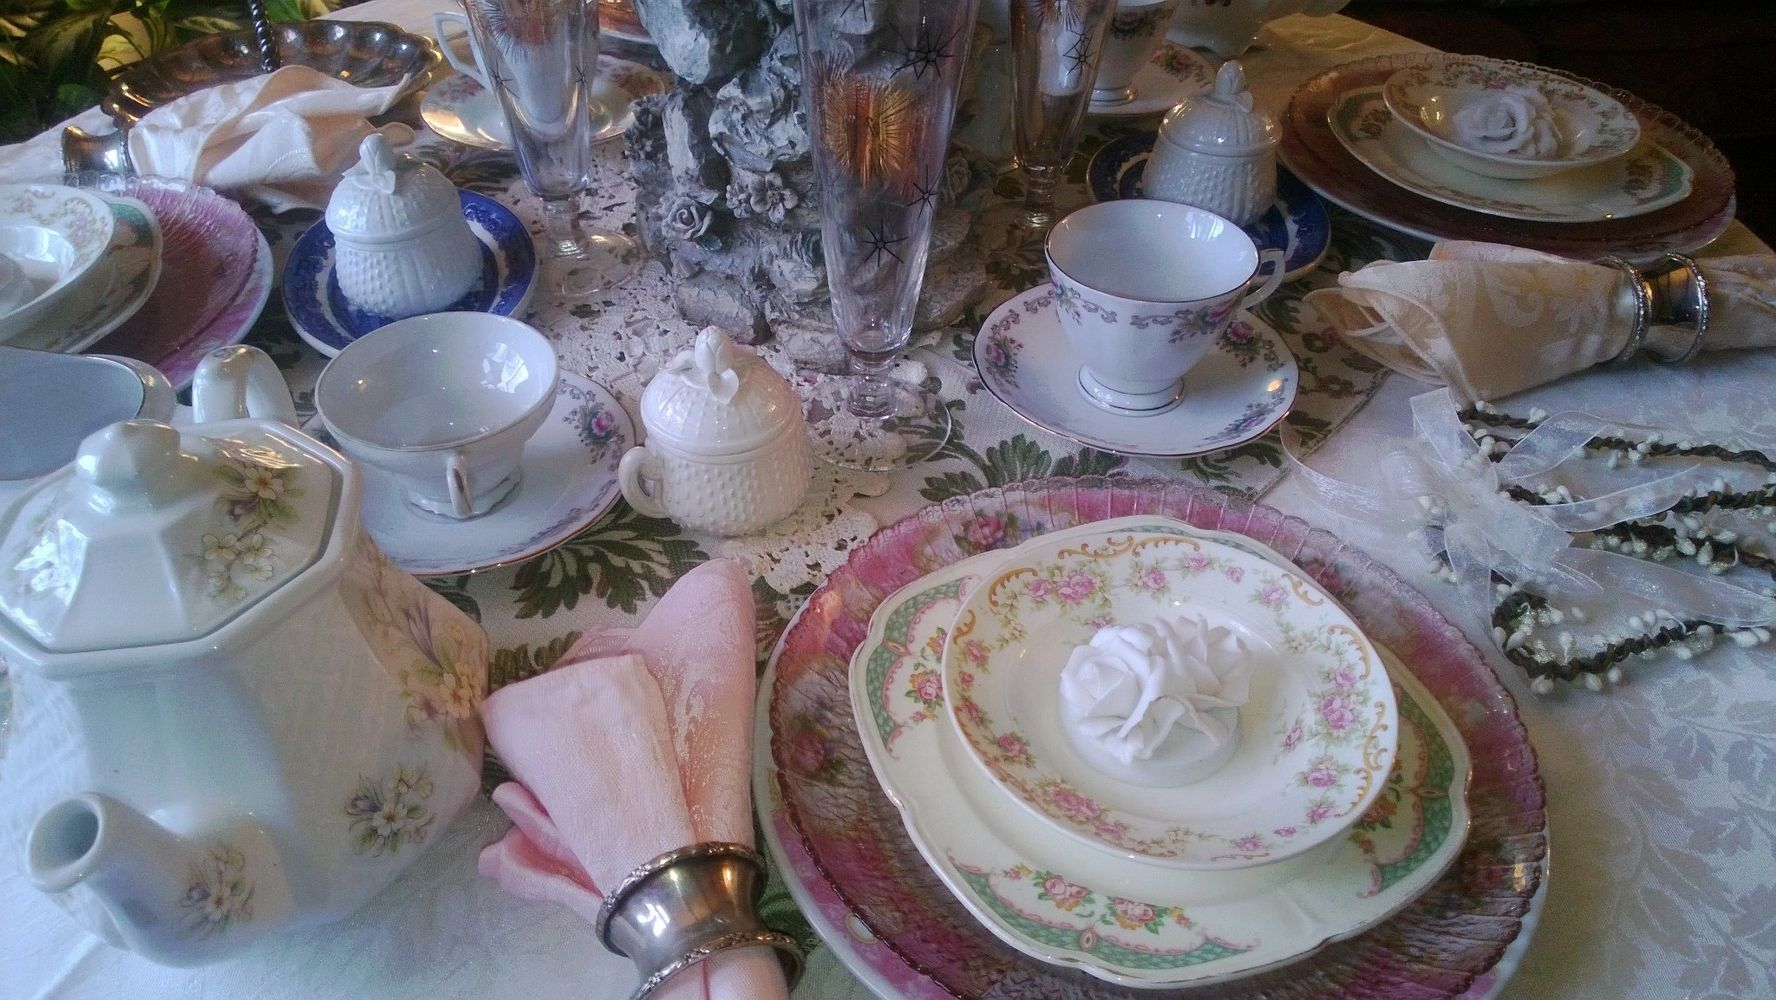 Vintage Glam Tea Party Table Setting